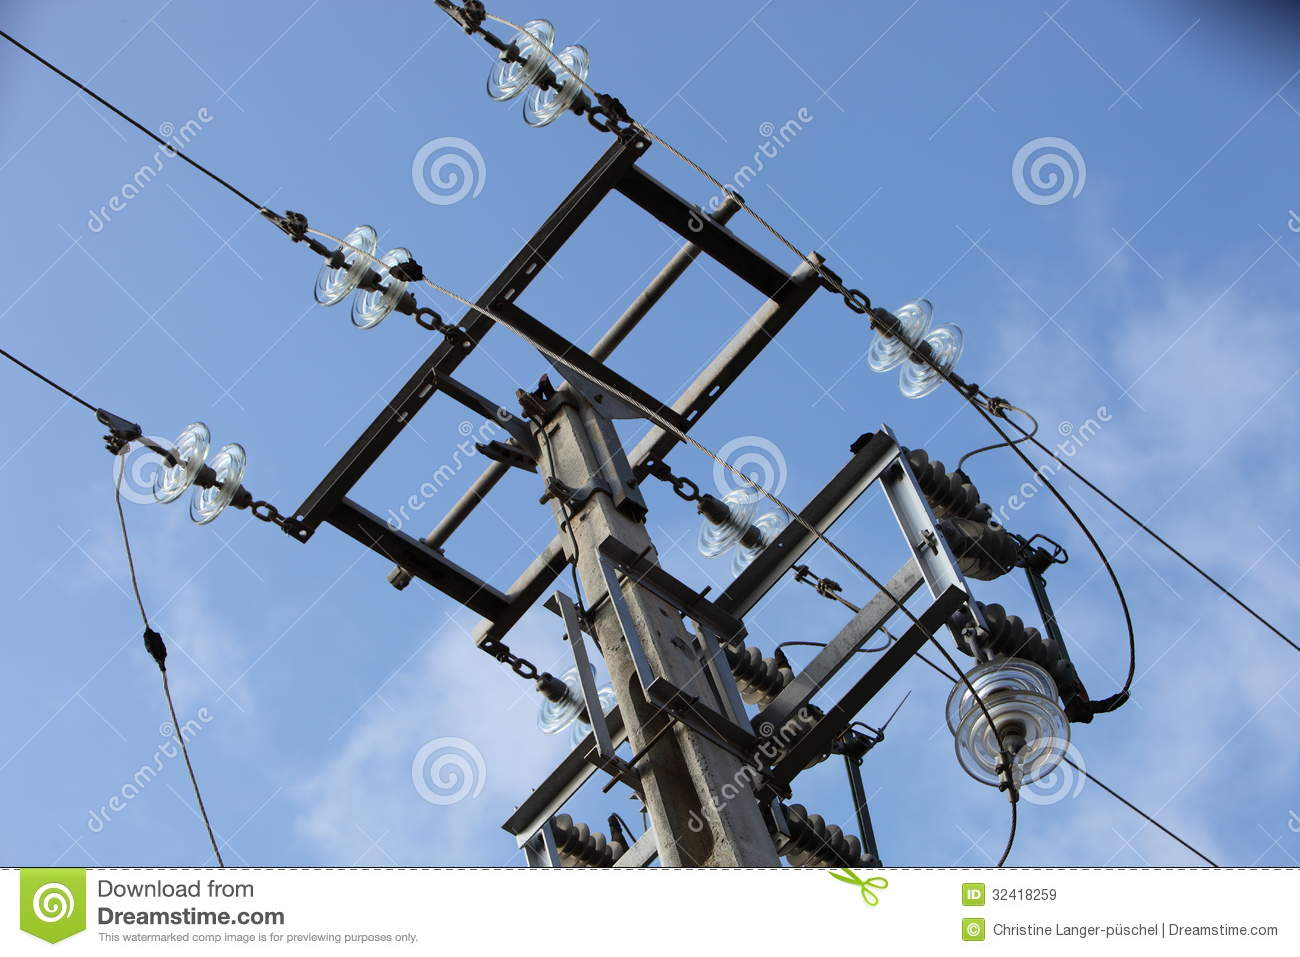 Overhead Electrical Conductors : Overhead electricity pole against a blue sky royalty free